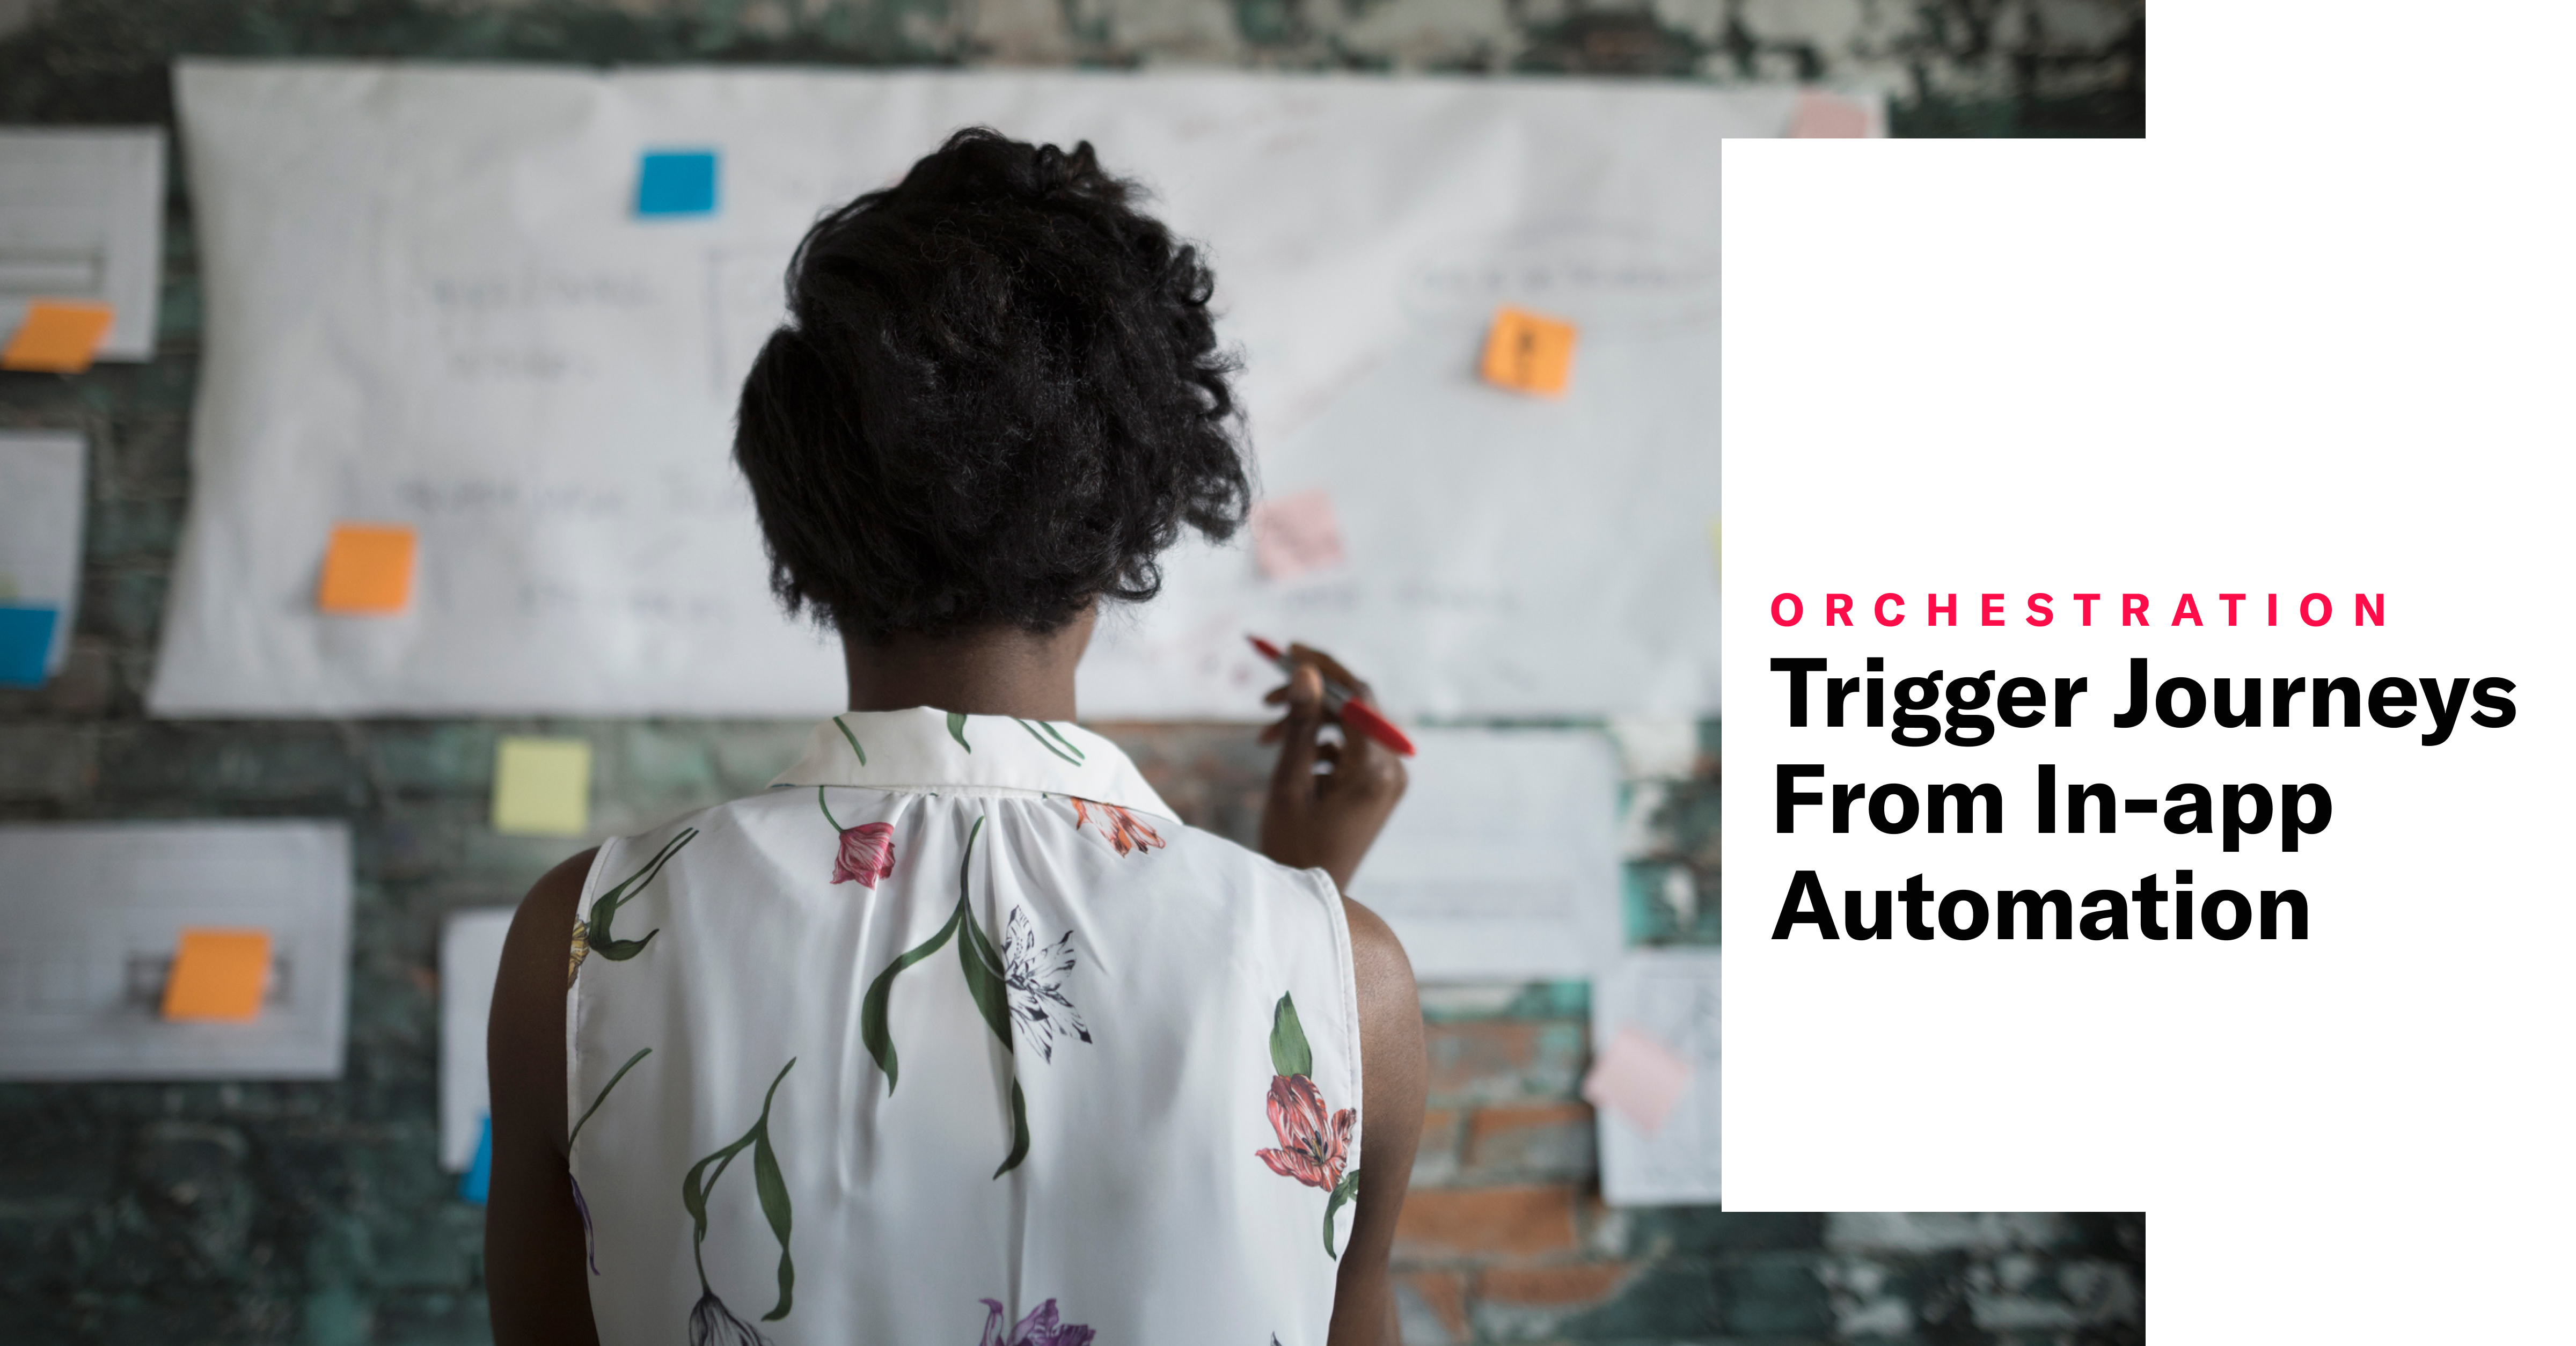 Trigger Journeys From In-app Automation